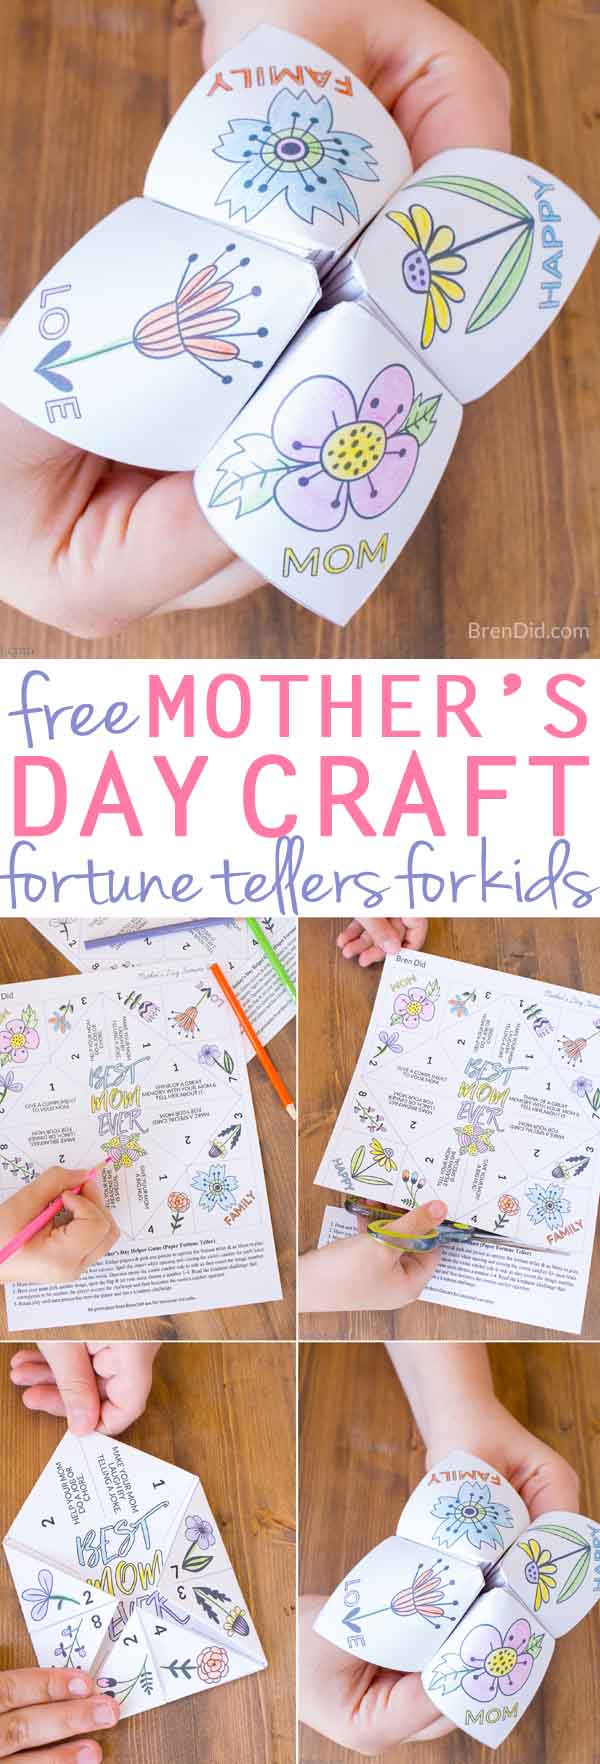 Easy Mother's Day Craft for Kids | Mother's Day Fortune Teller  | free printable Mother's Day craft | Mother's Day free printable craft